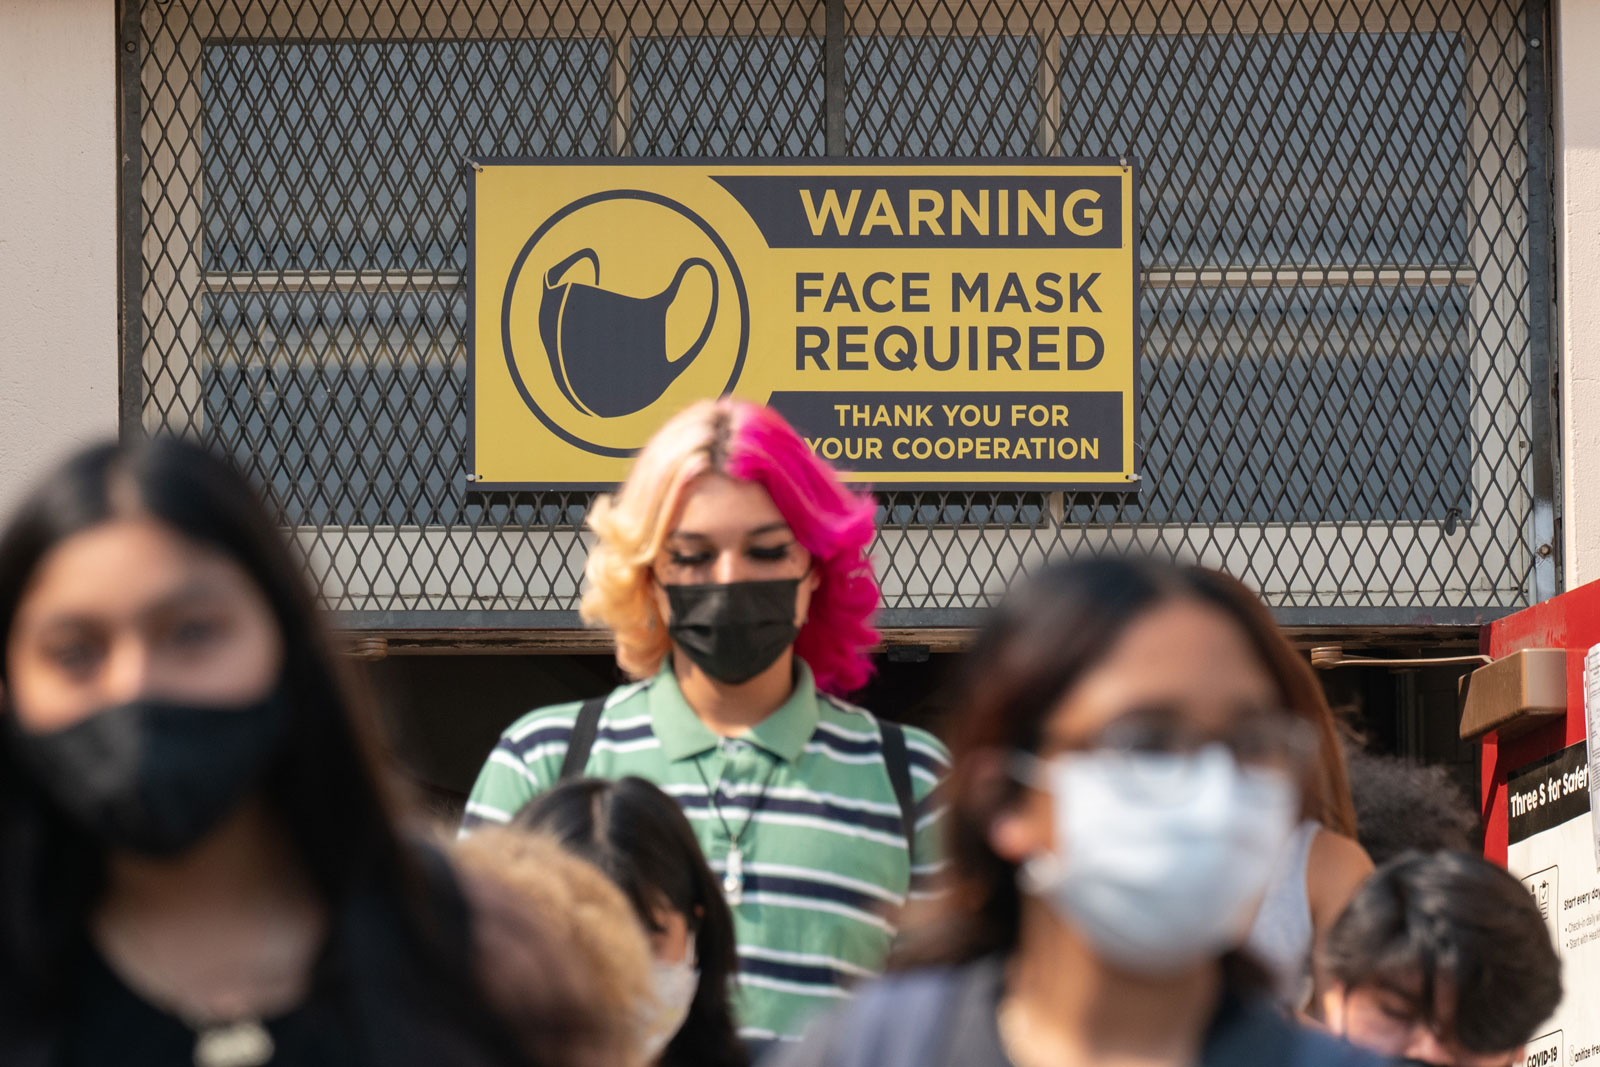 Students exit Hollywood High School after the first day of school in Los Angeles, California on Aug. 16.